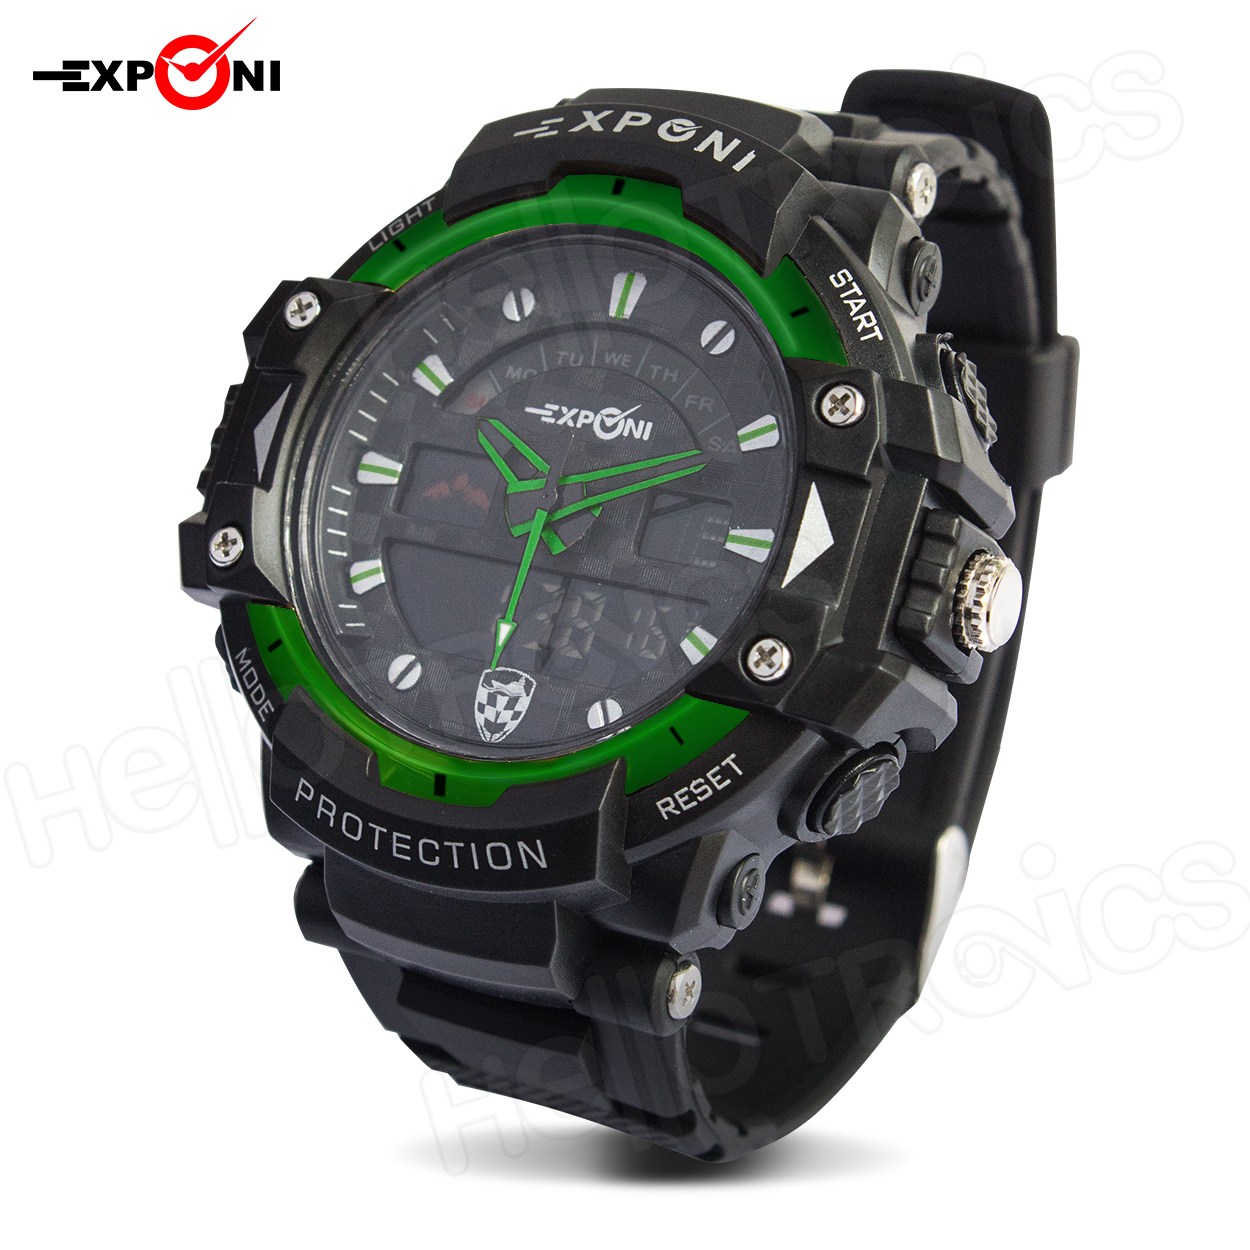 Exponi 3251 Digital Army Watch Unisex Resin Wrist Band (Green) product preview, discount at cheapest price